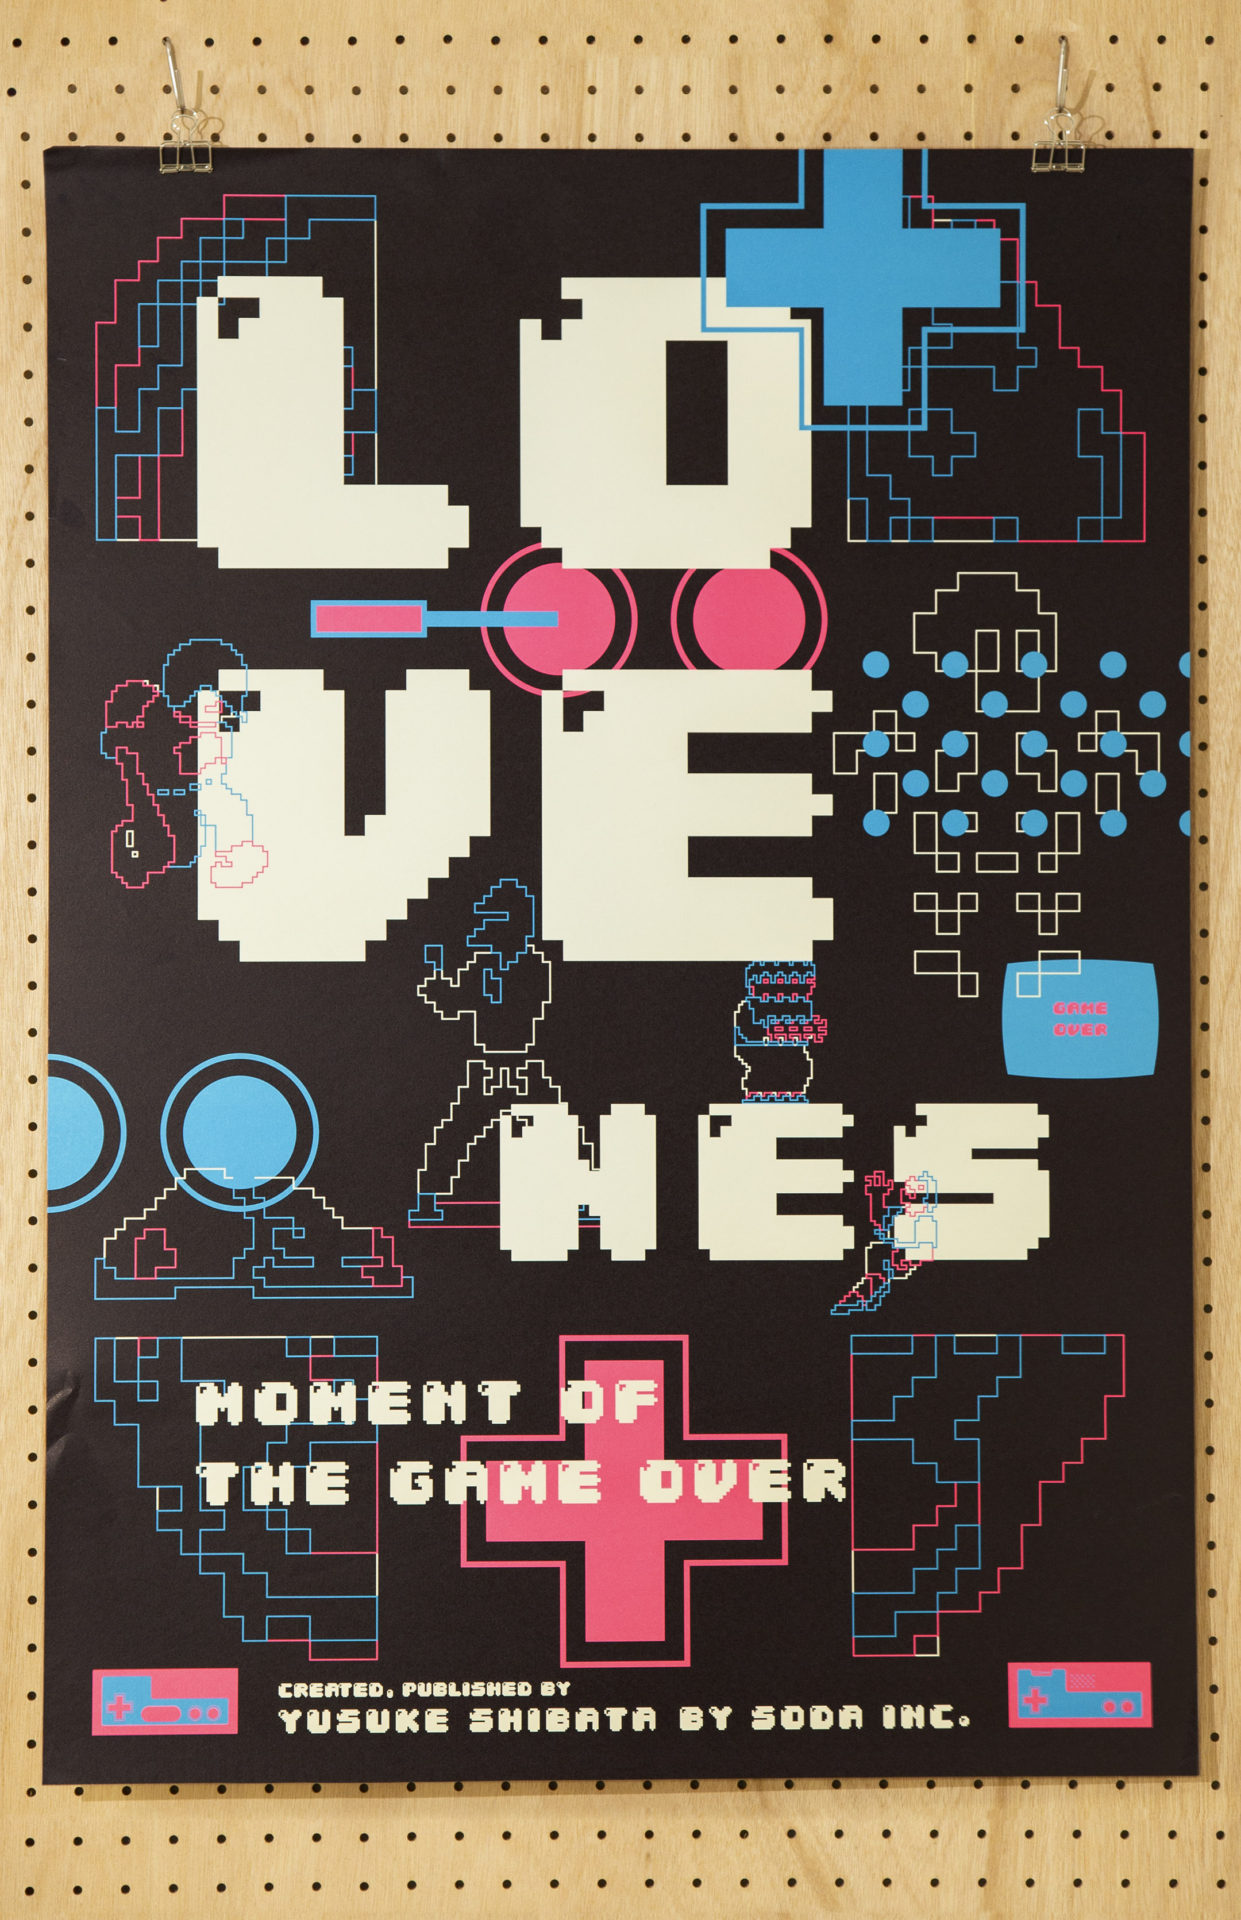 LOVE NES ~Moment Of The Game Over~